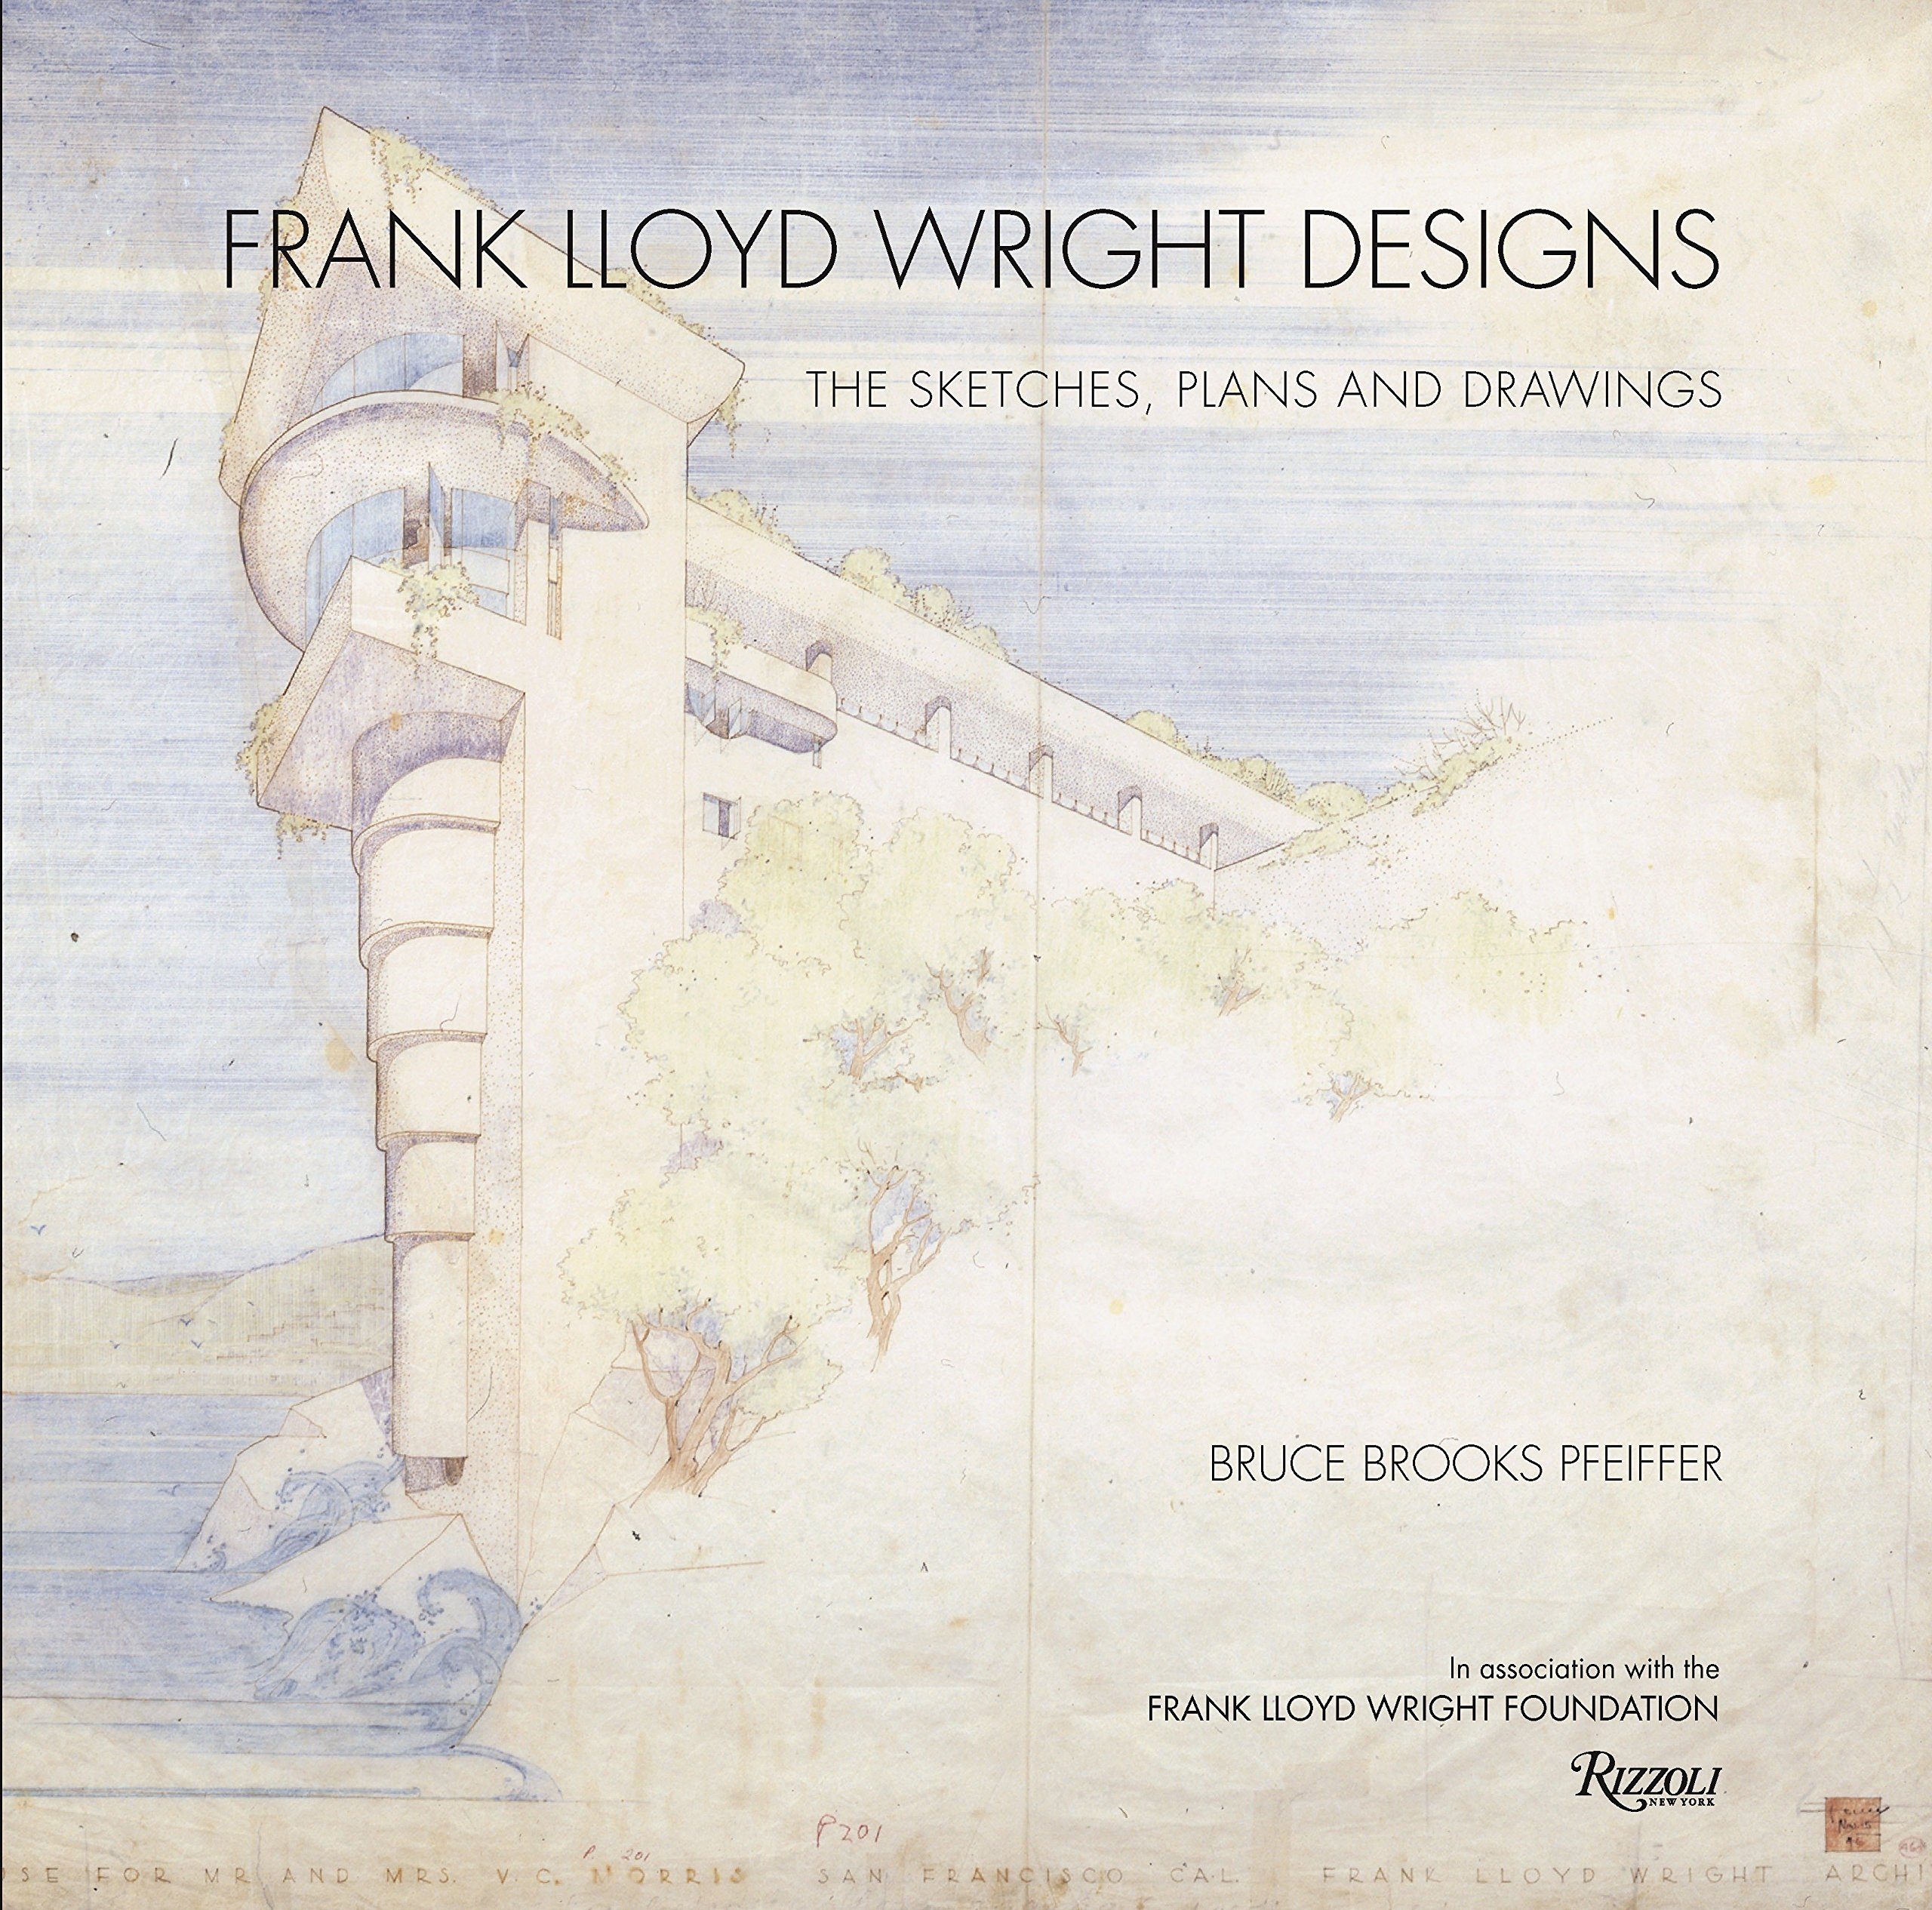 Frank lloyd wright designs the sketches plans and drawings hardcover 1 oct 2011